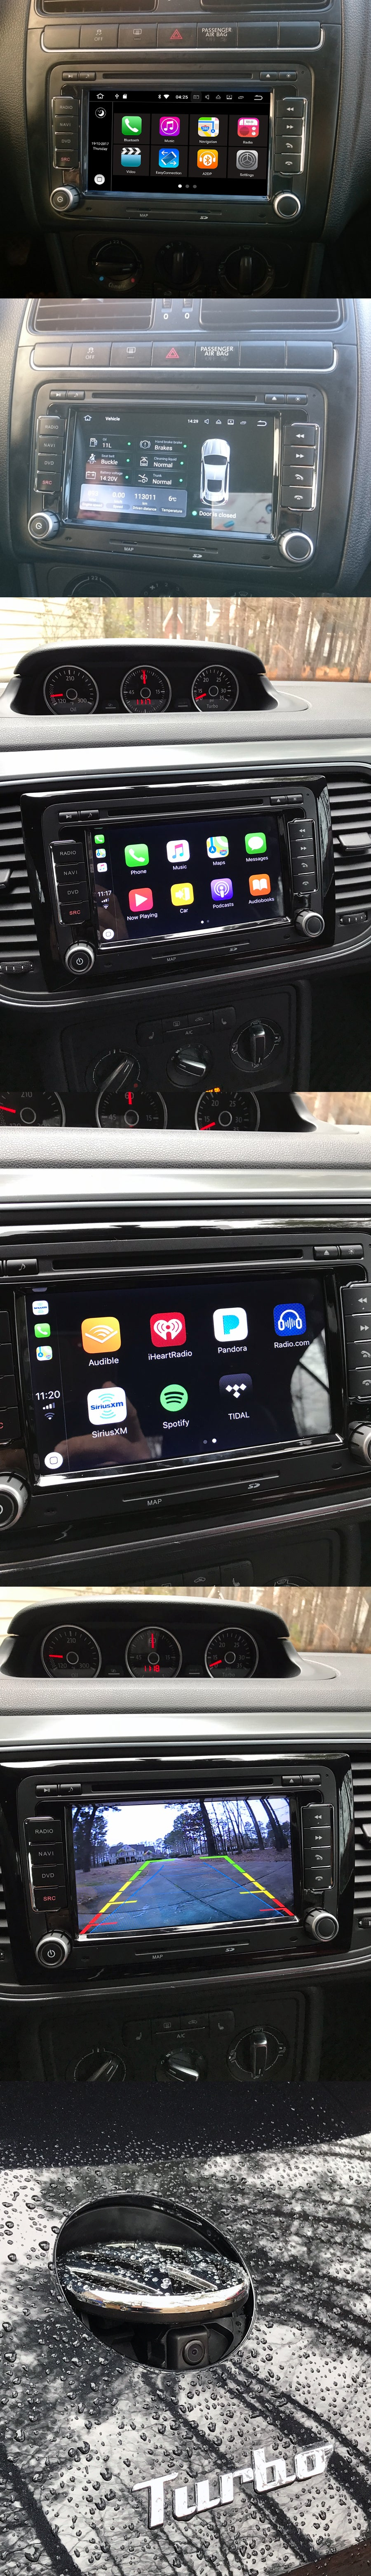 vw aftermarket navigation radio